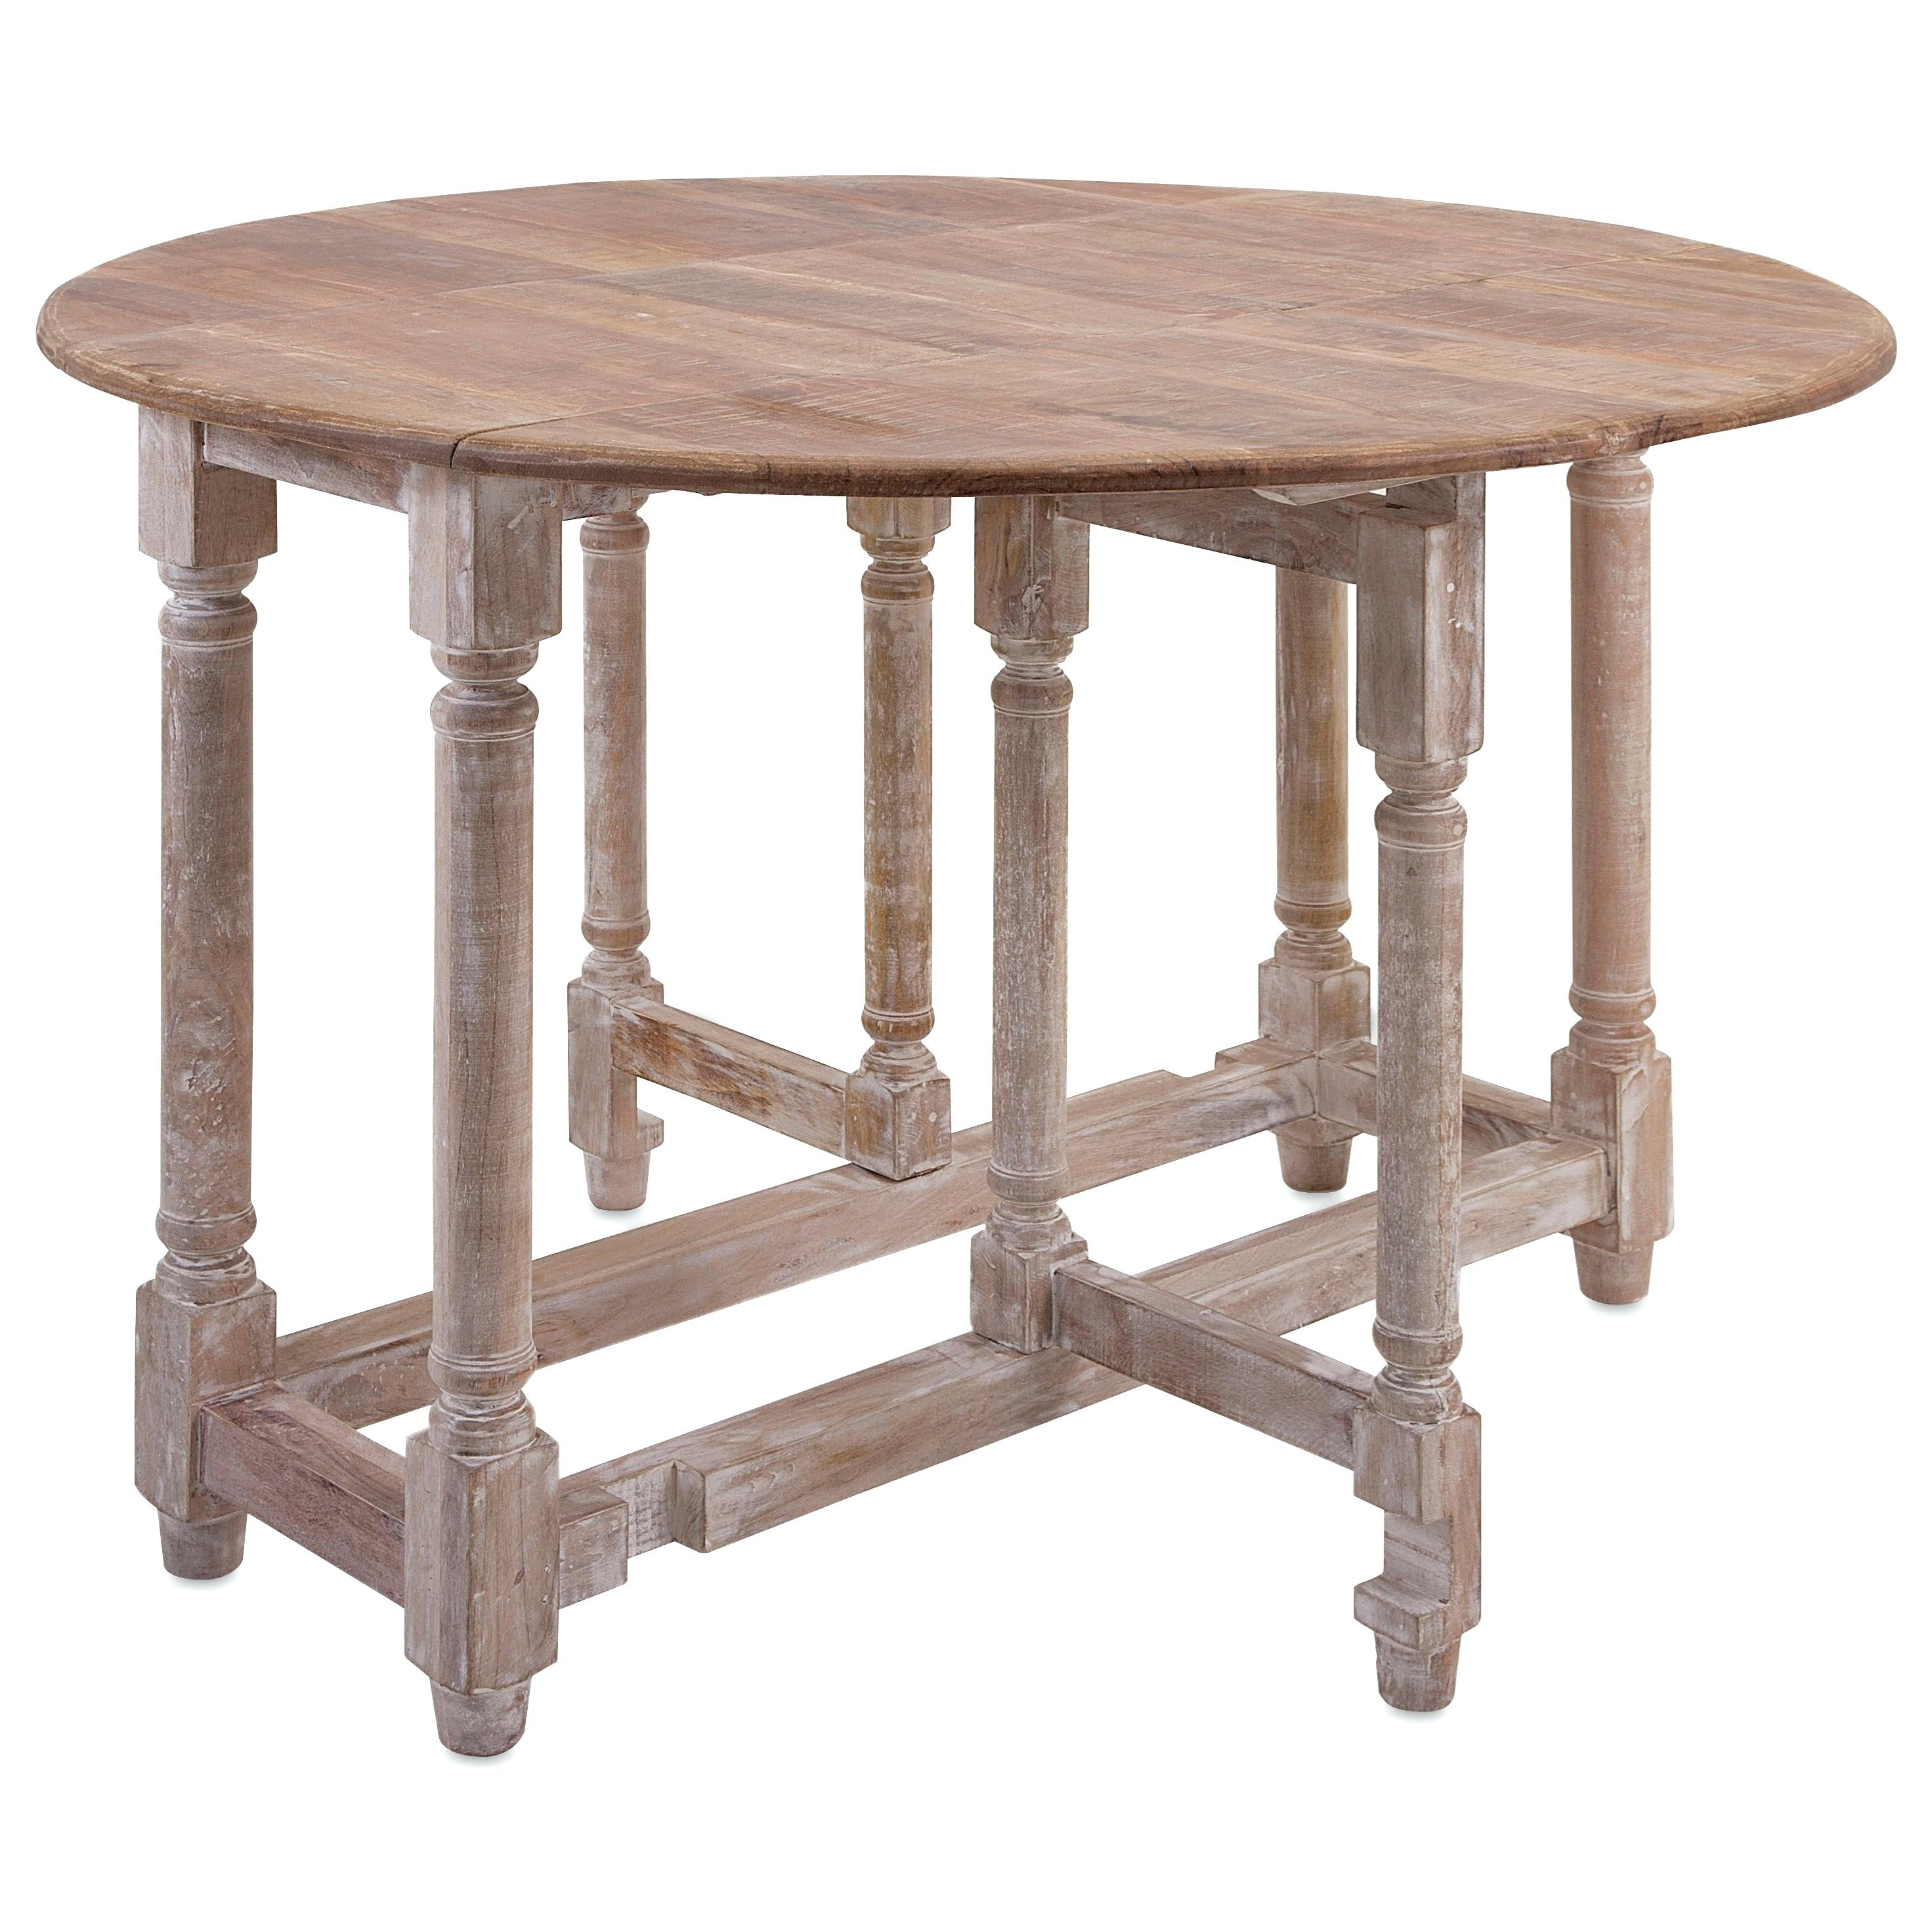 drop leaf accent table vintage end side cherry wood worldwide home tables and cabinets round antique spindle leg ethan allen dining small brass whole lighting fixtures pottery